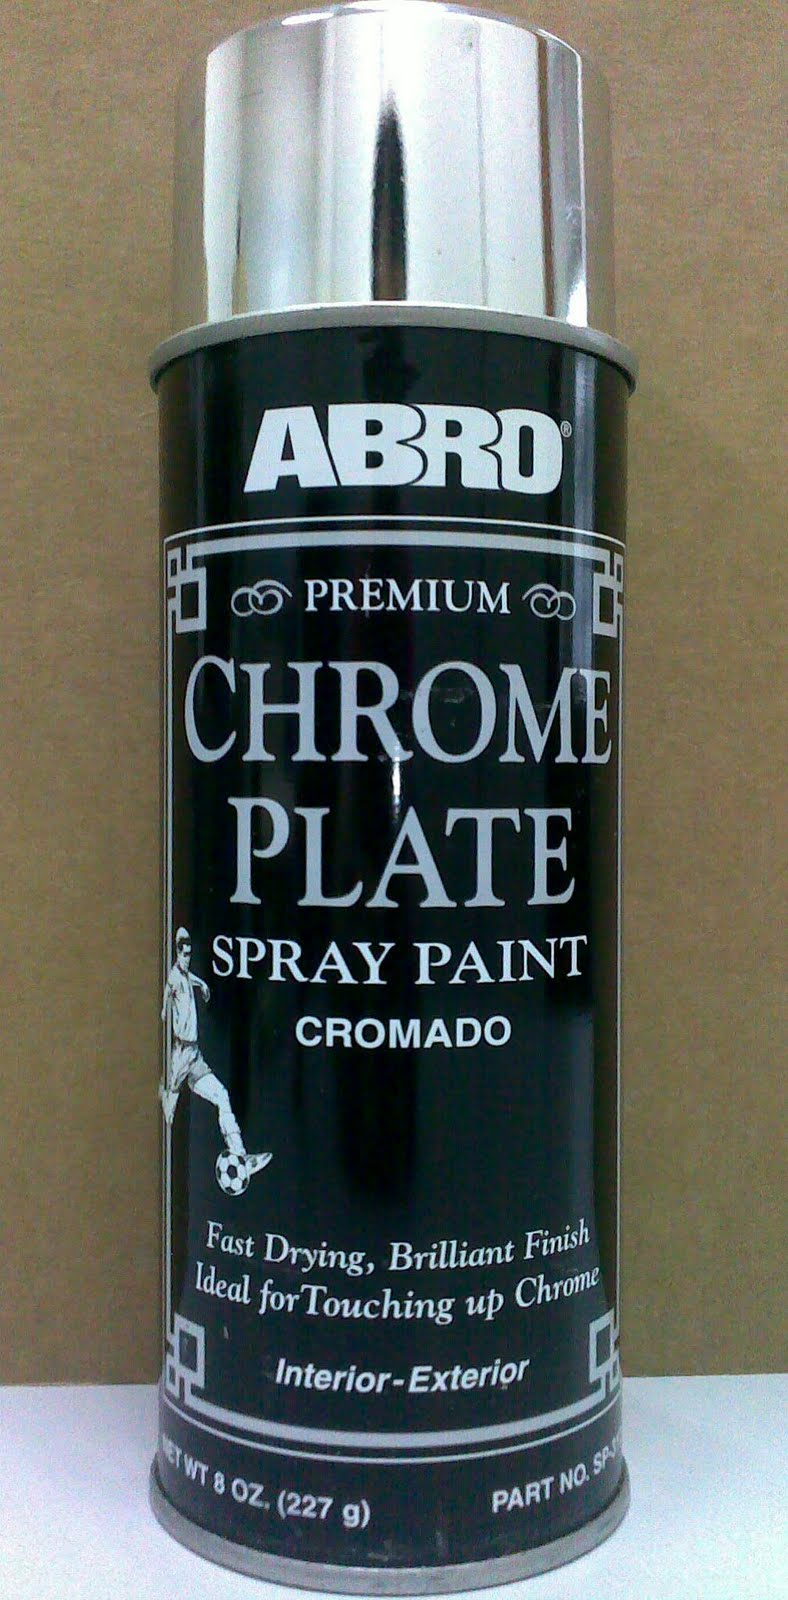 Abro Premium Chrome Plate Spray Paint Easy Chroming Diy